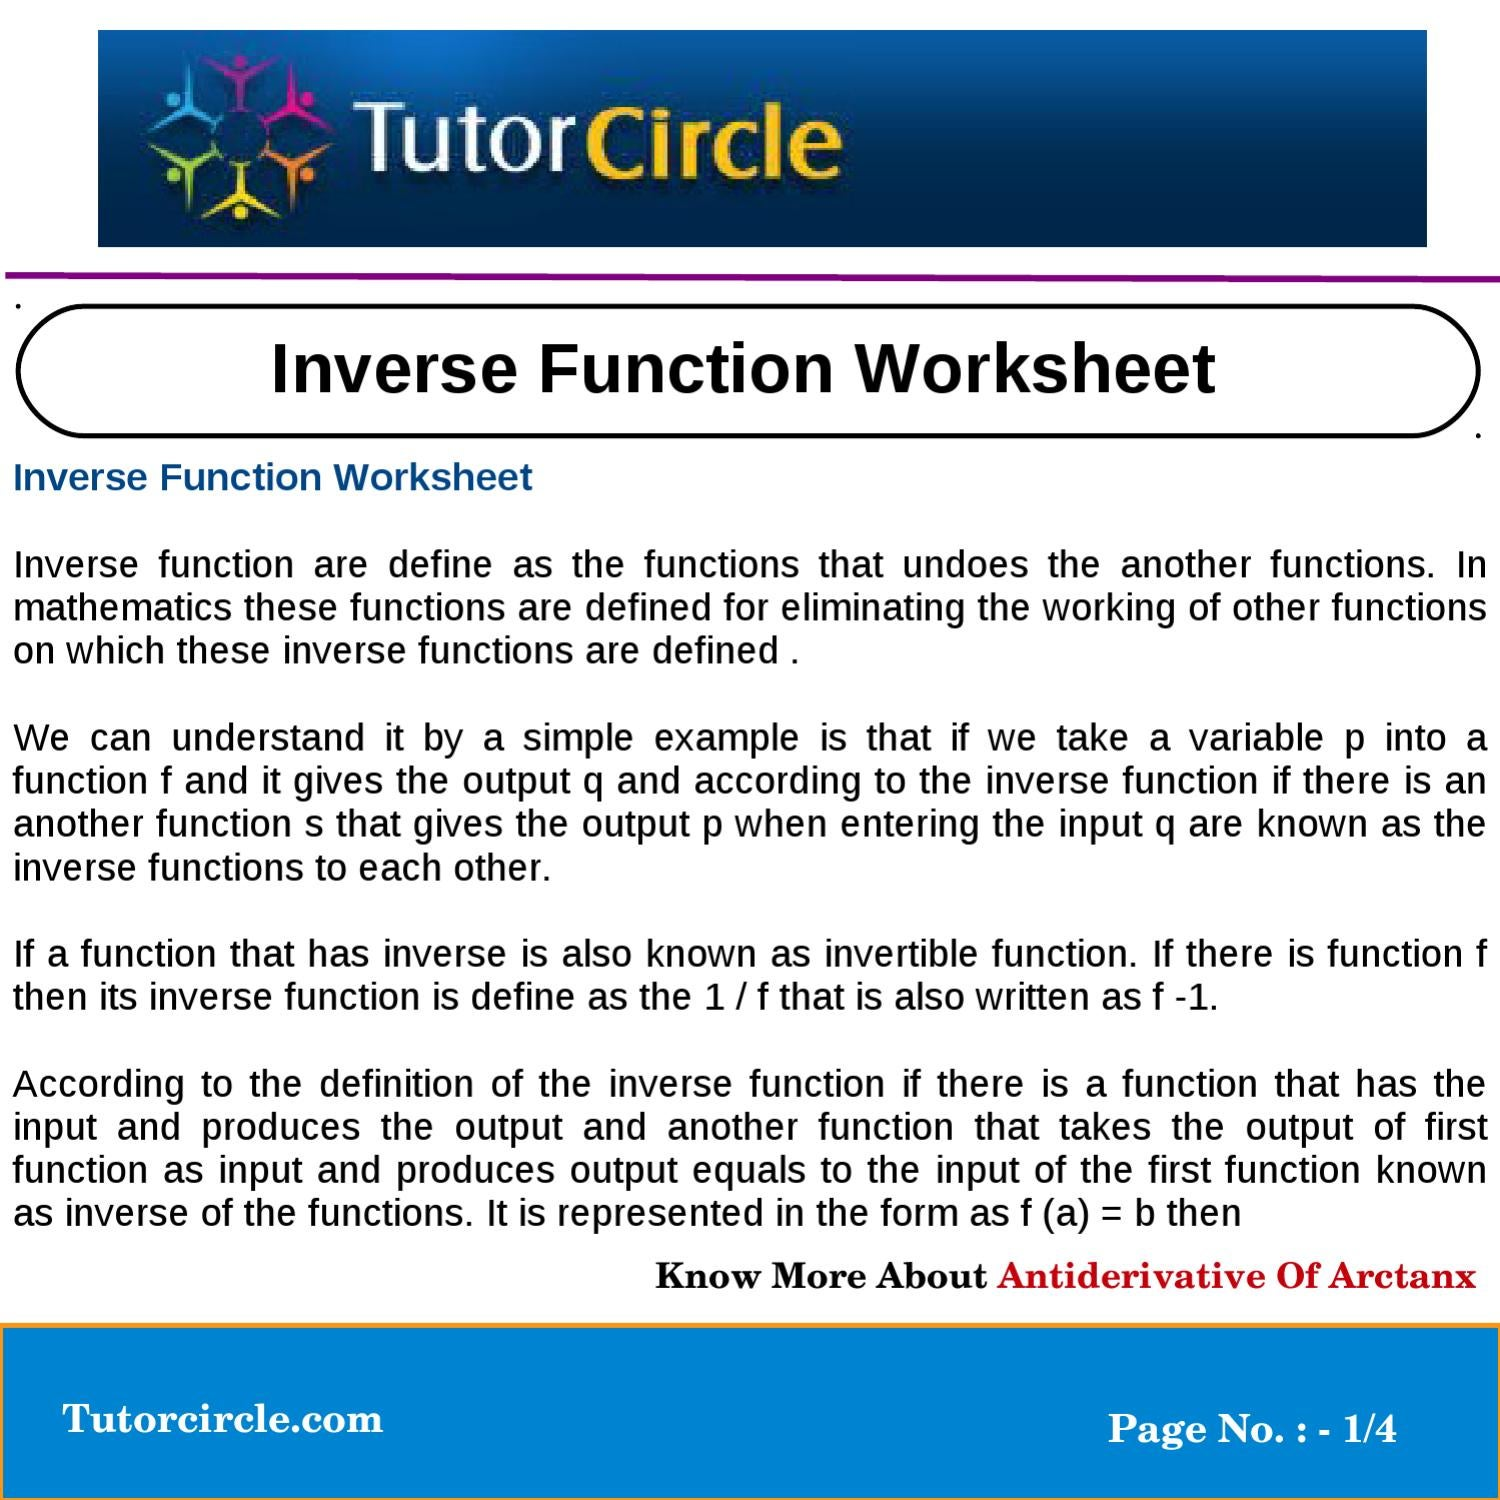 Inverse Function Worksheet By Tutorcircle Team Issuu